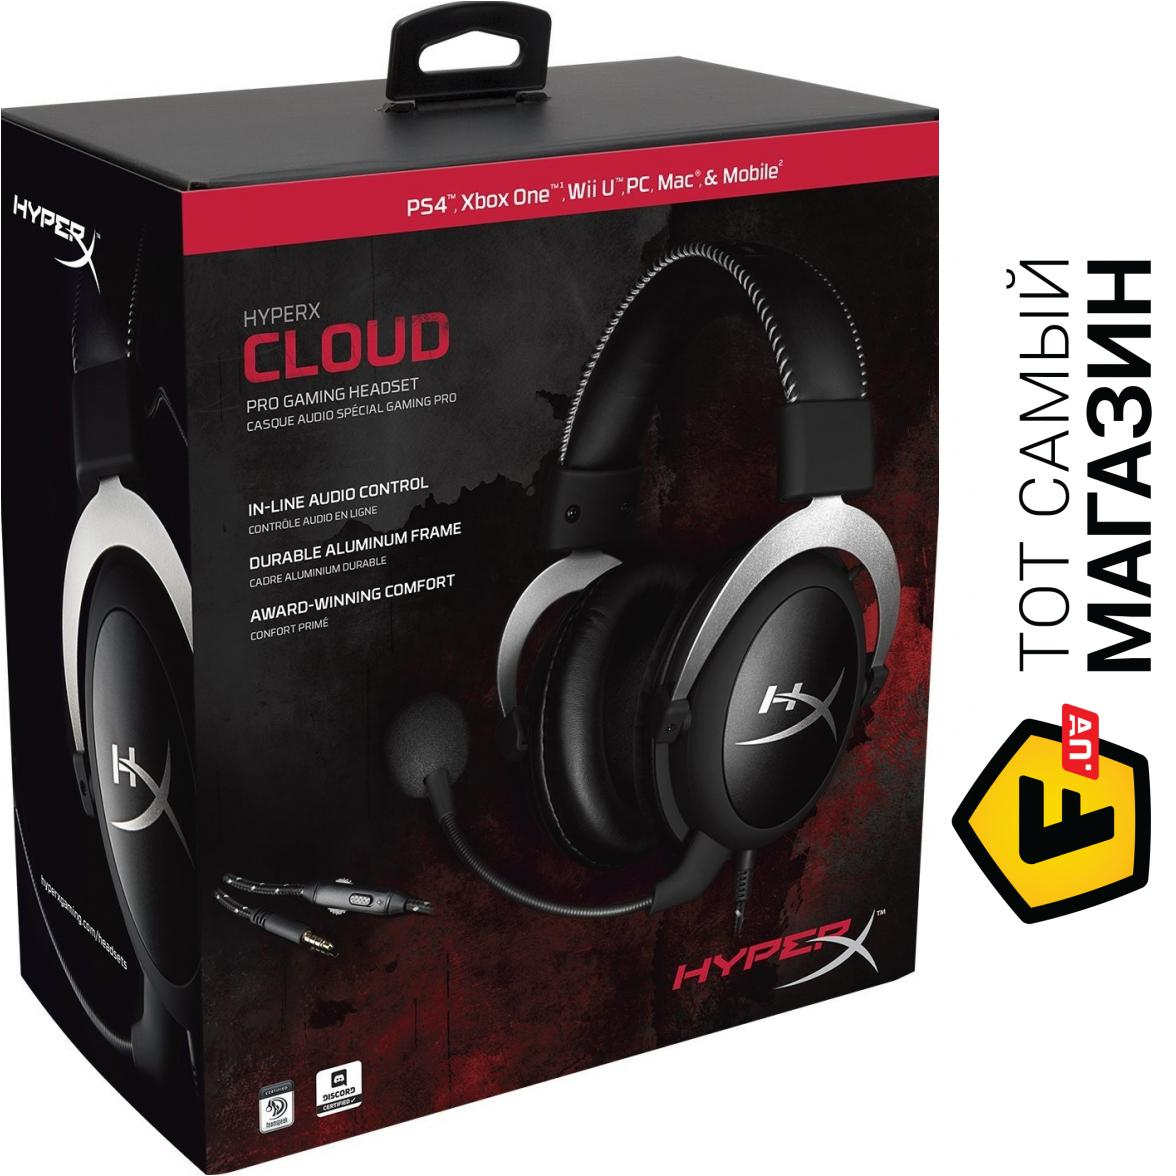 ᐈ KINGSTON HyperX Cloud Pro Gaming Headset Silver (HX-HSCL-SR NA ... 572186a898d24